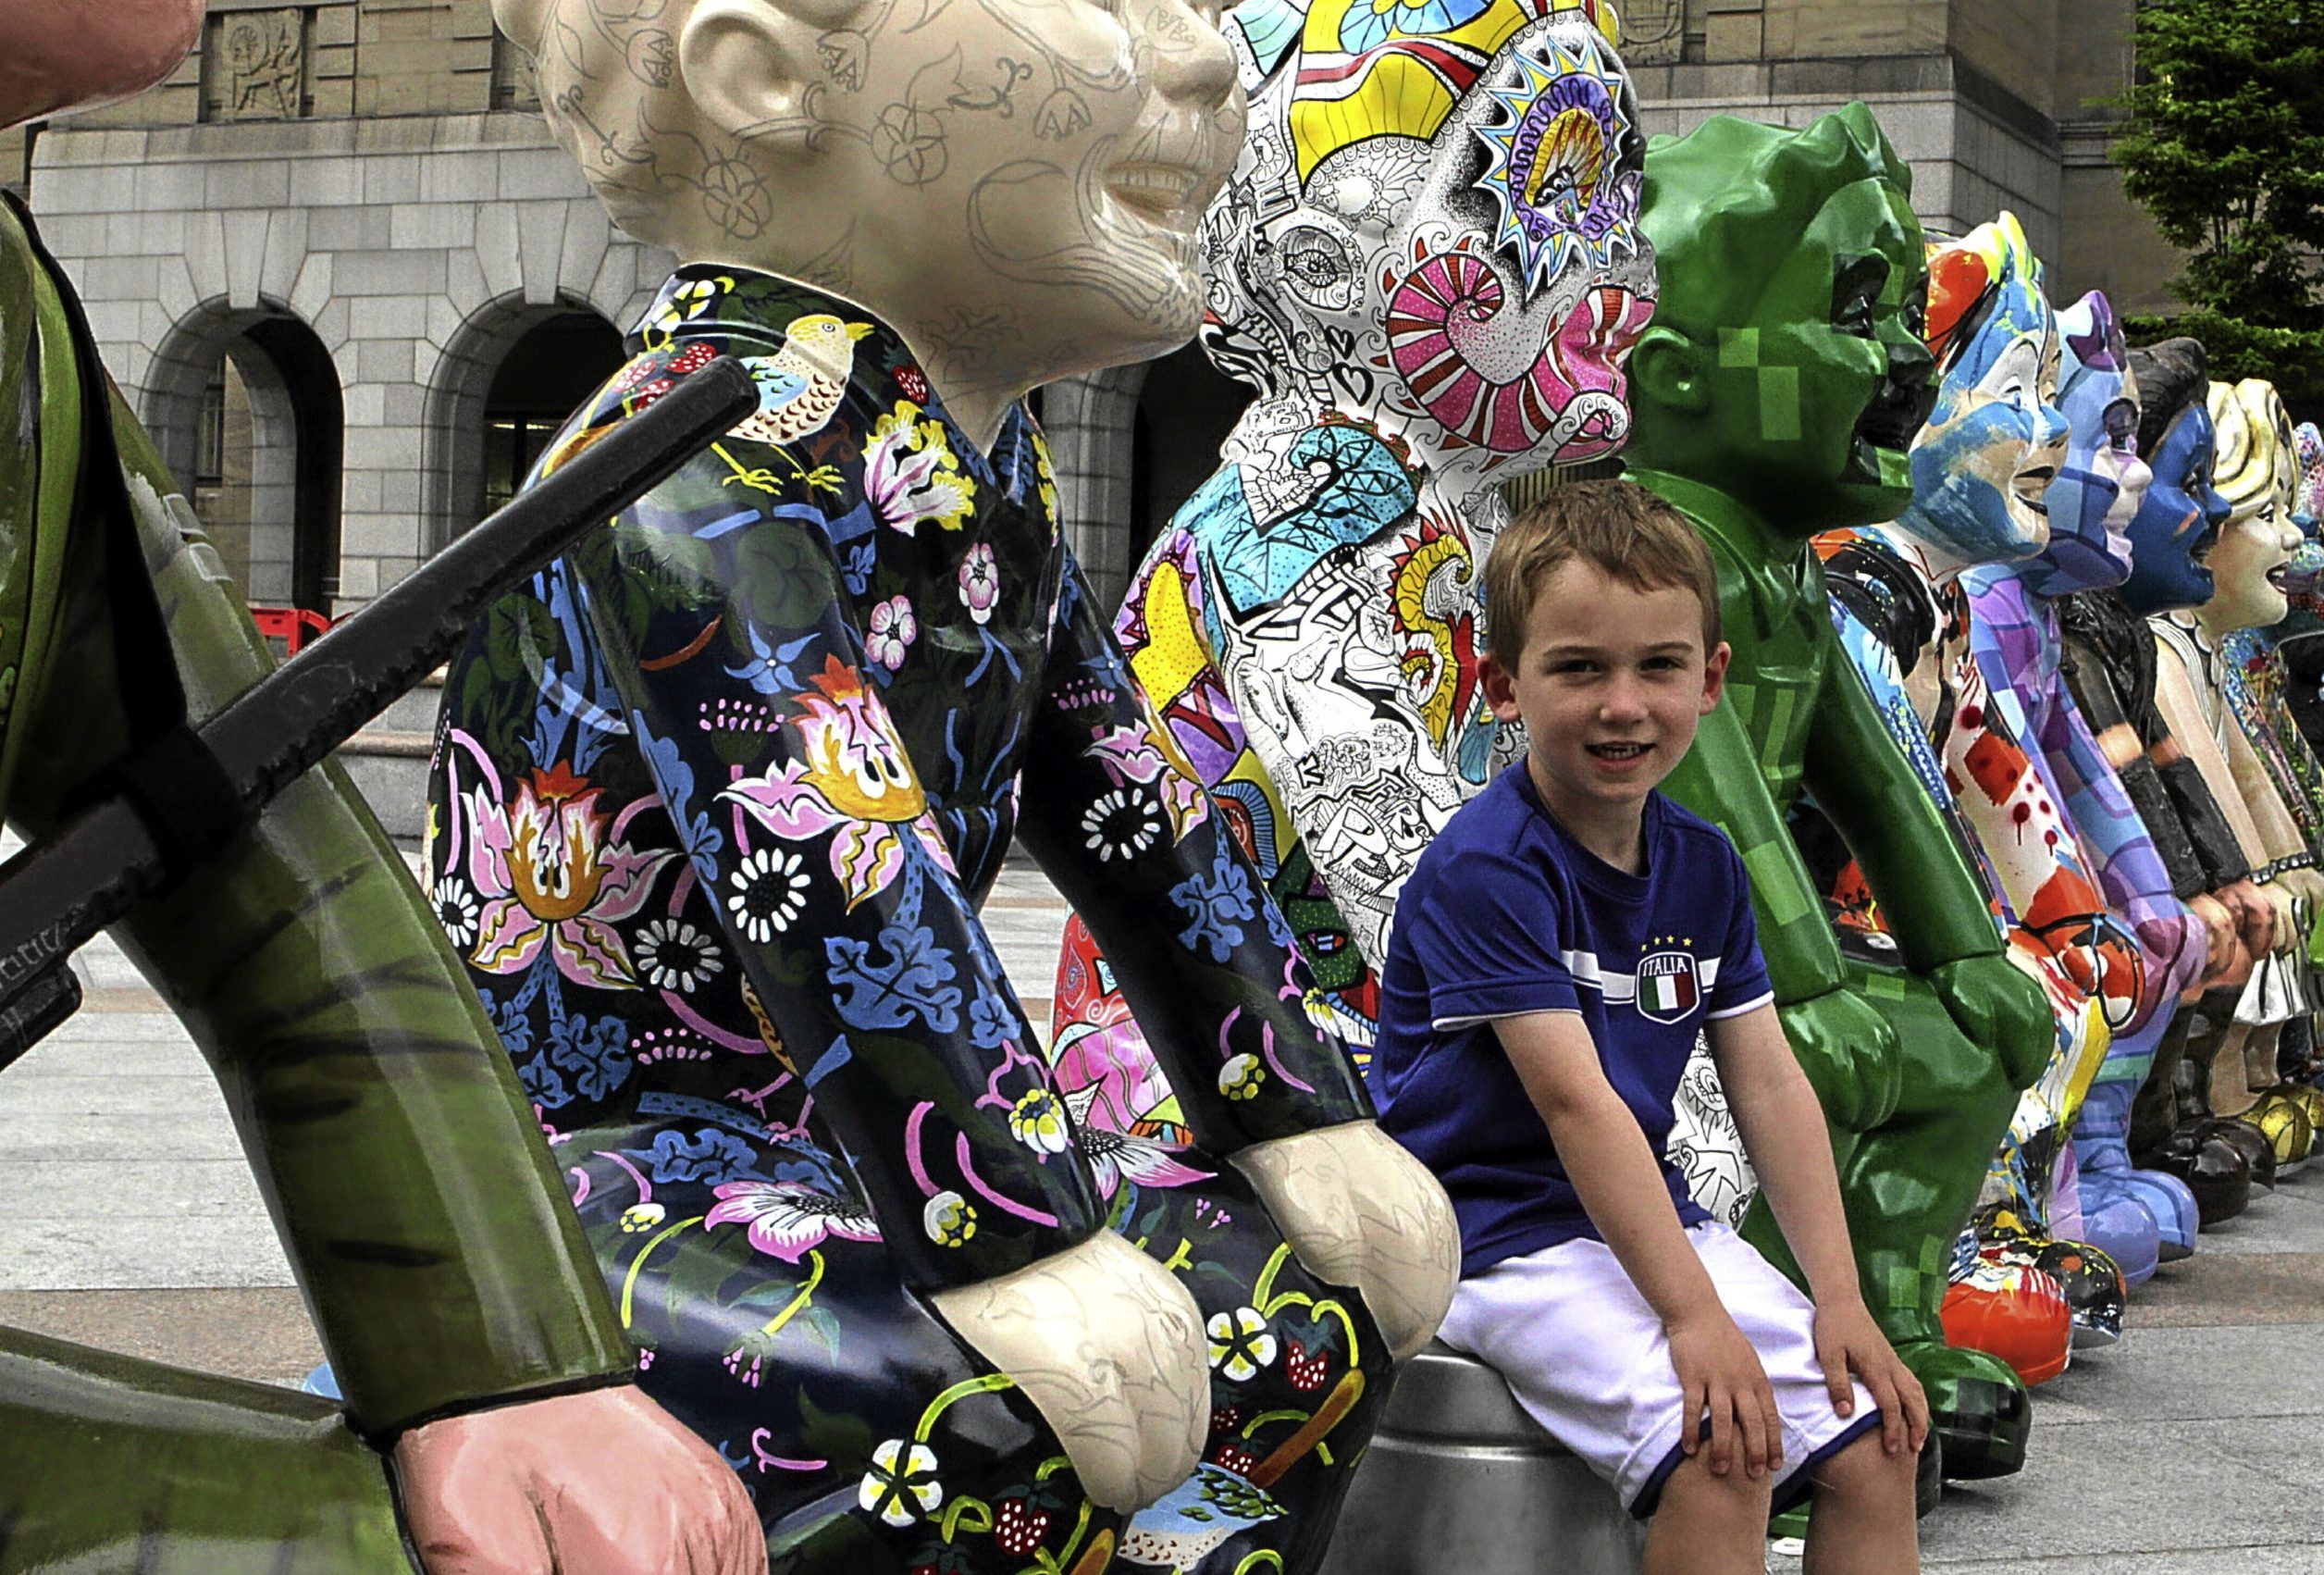 Arran Barnes, four, of Invergowrie, sits between some of the sculptures at the launch in the city square yesterday.